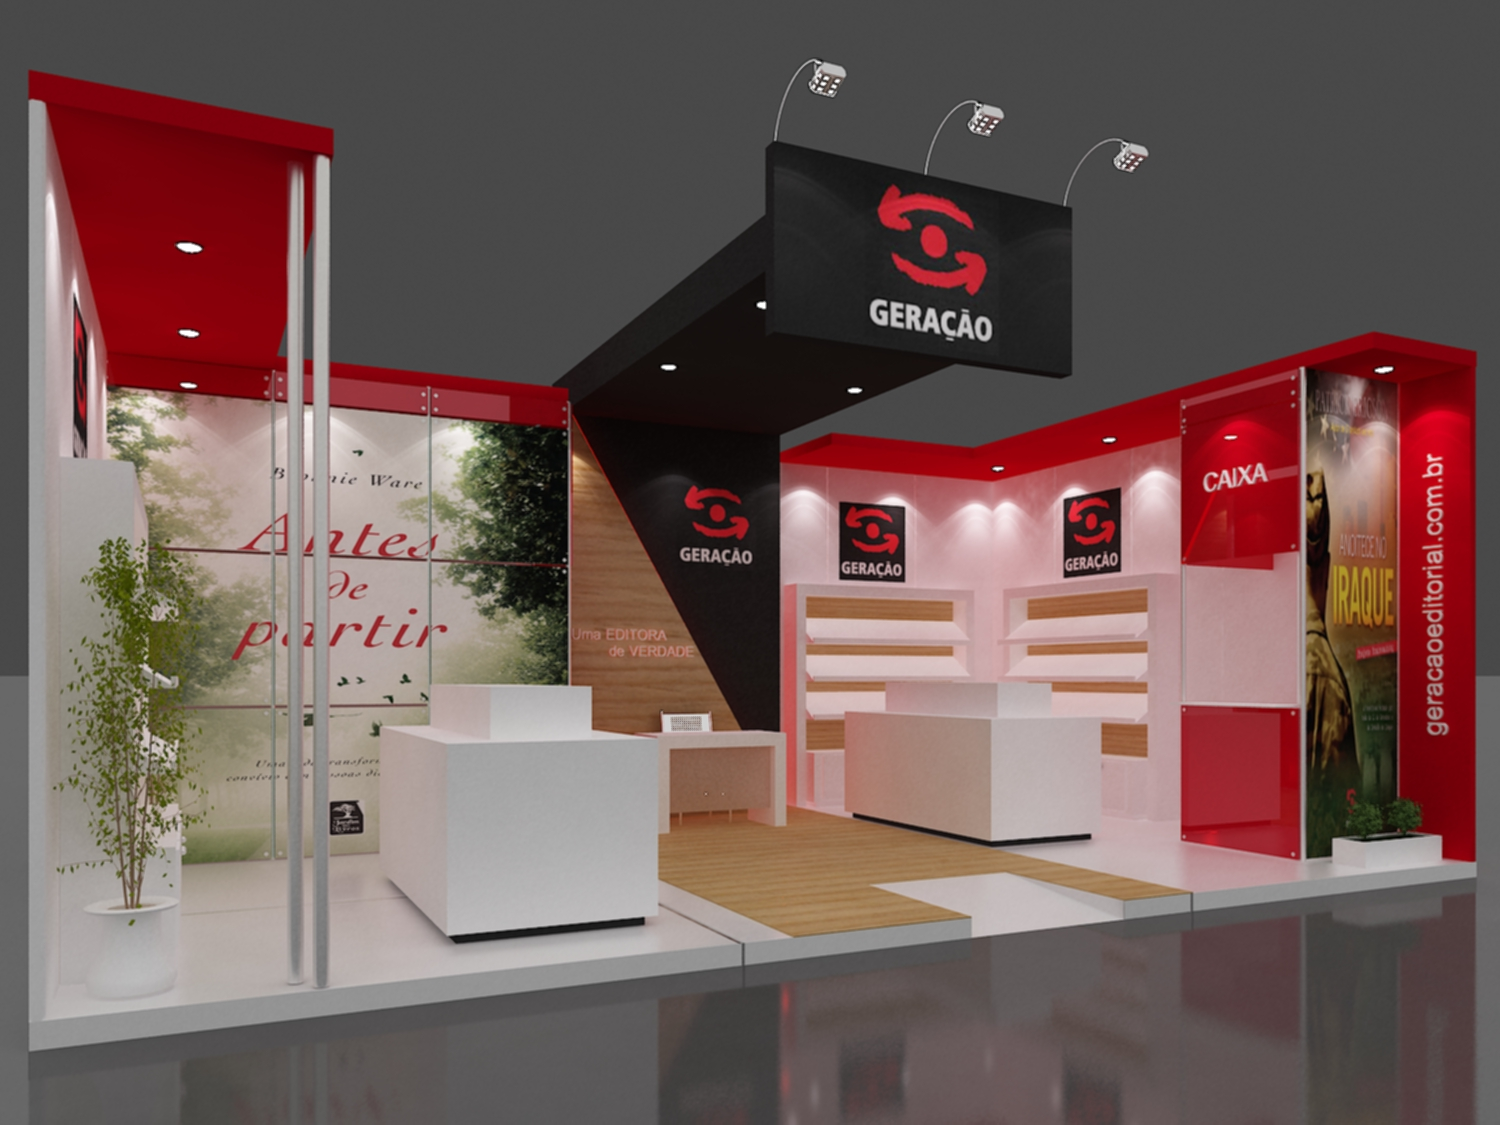 Exhibition Booth Design Uk : Pinterest the world s catalog of ideas